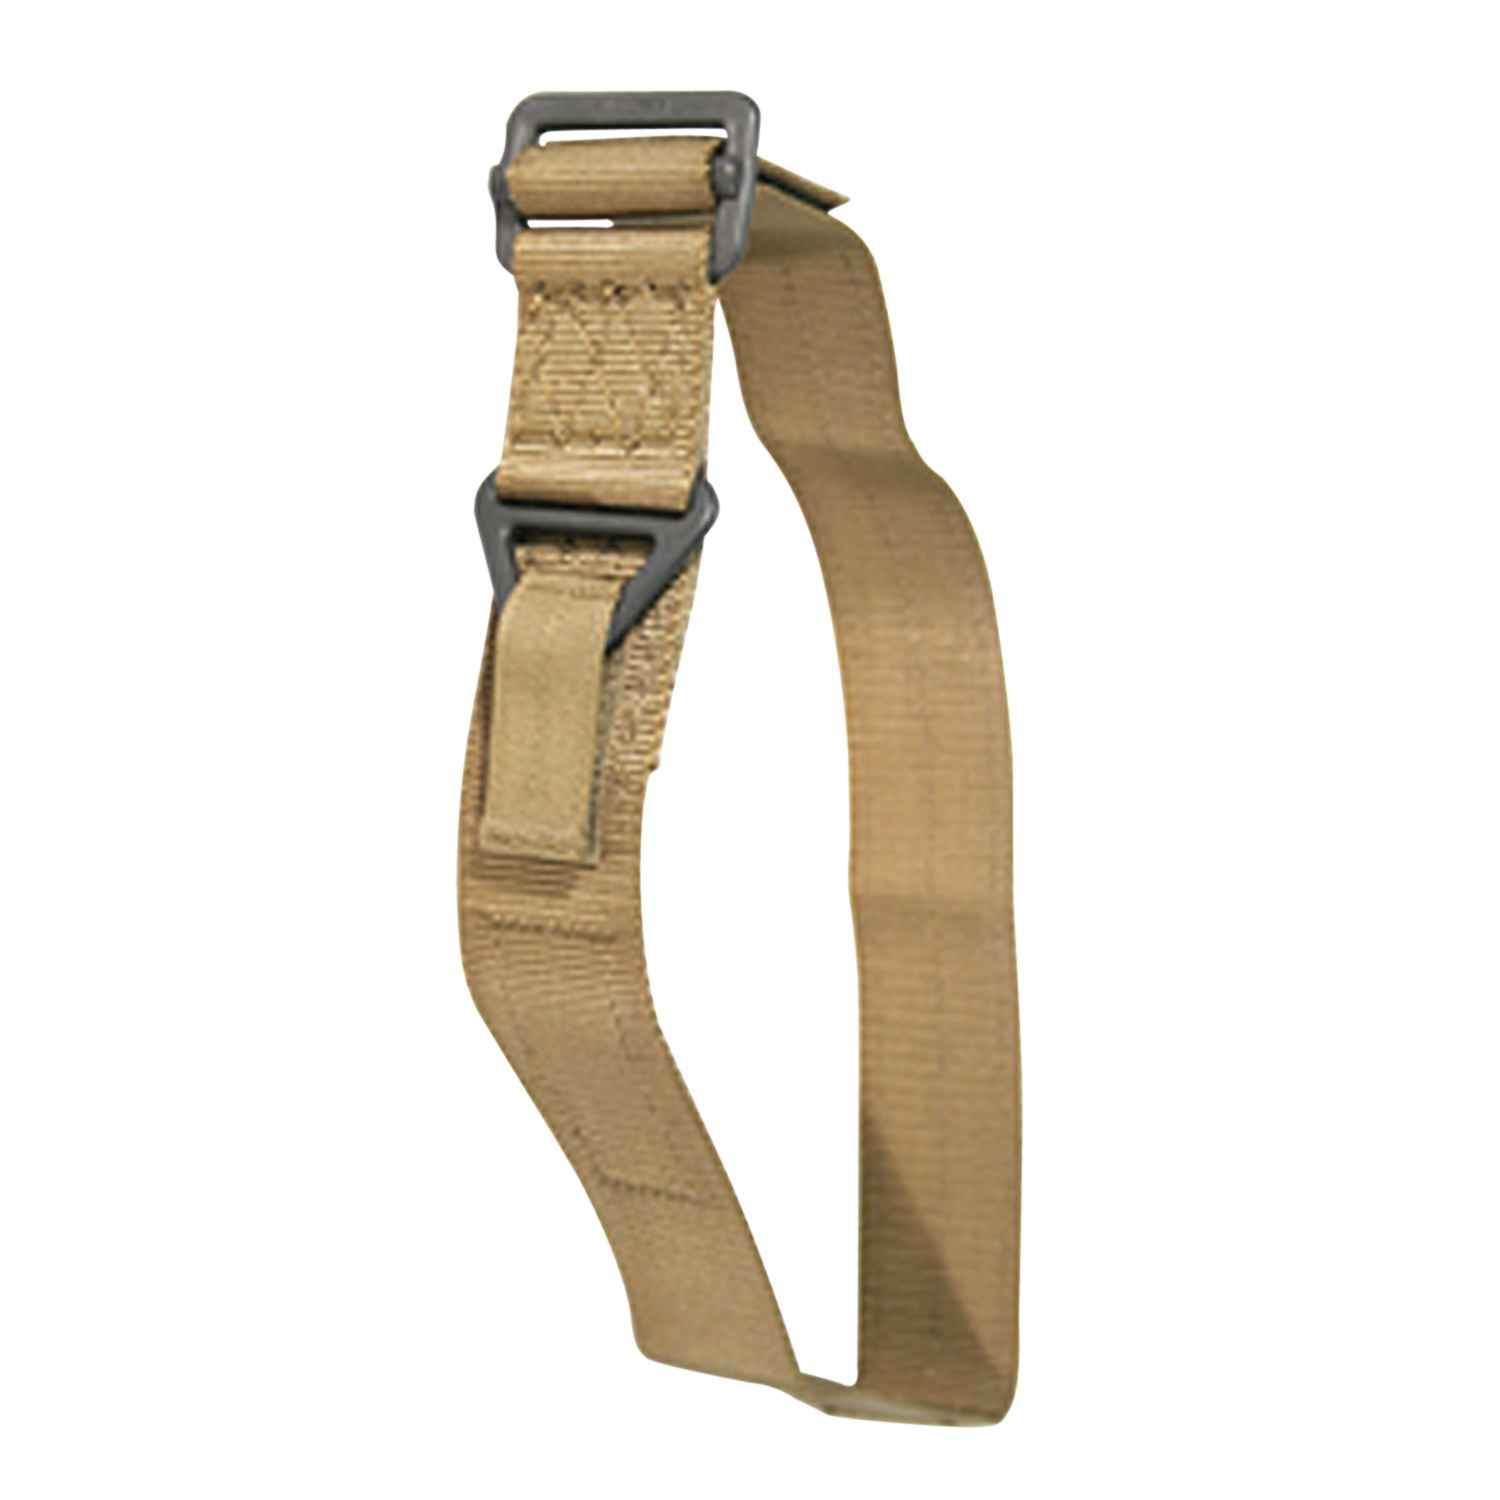 Blackhawk CQB/Riggers Belt, Coyote Tan, Large, 41-51 inch